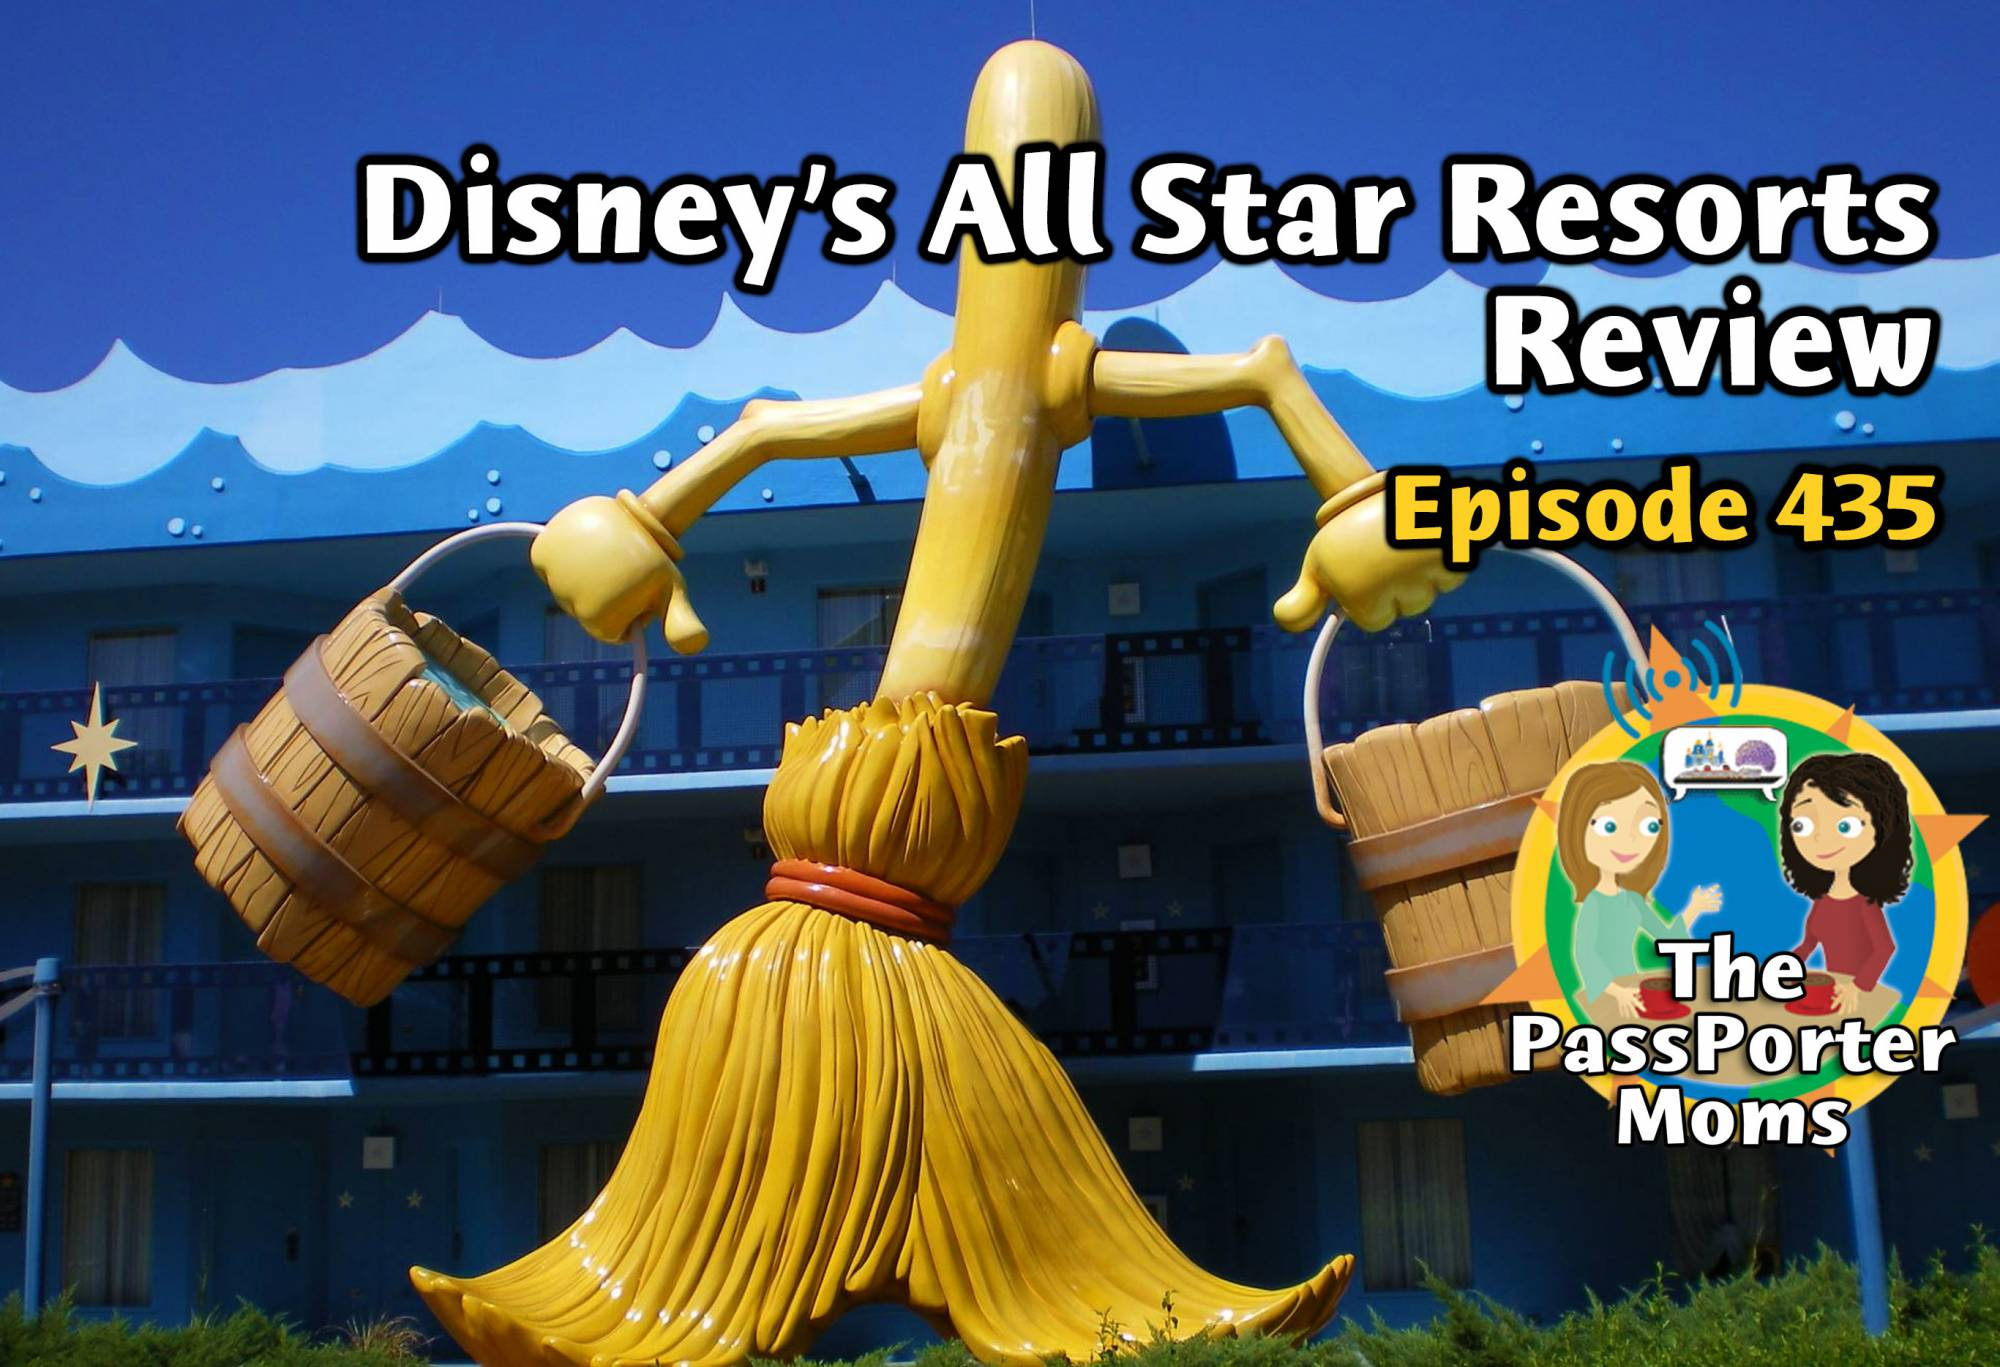 All Star Resorts Review